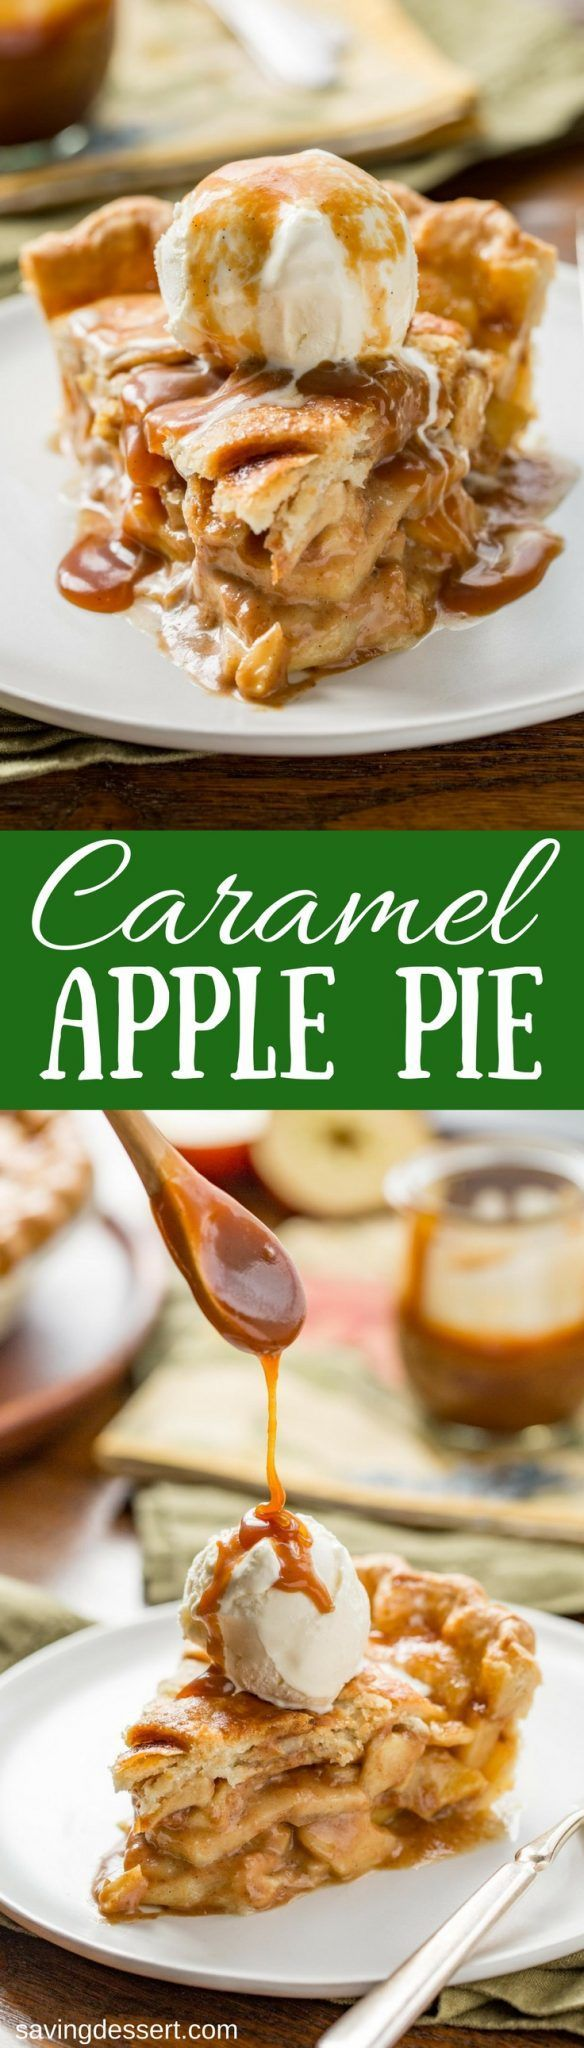 Caramel Apple Pie ~ a delicious twist on a classic apple pie. The pie is lightly sweetened with a creamy caramel sauce, then served with an extra drizzle on top. www.savingdessert.com #savingroomfordessert #applepie #pie #apple #caramelapple #caramelapplepie